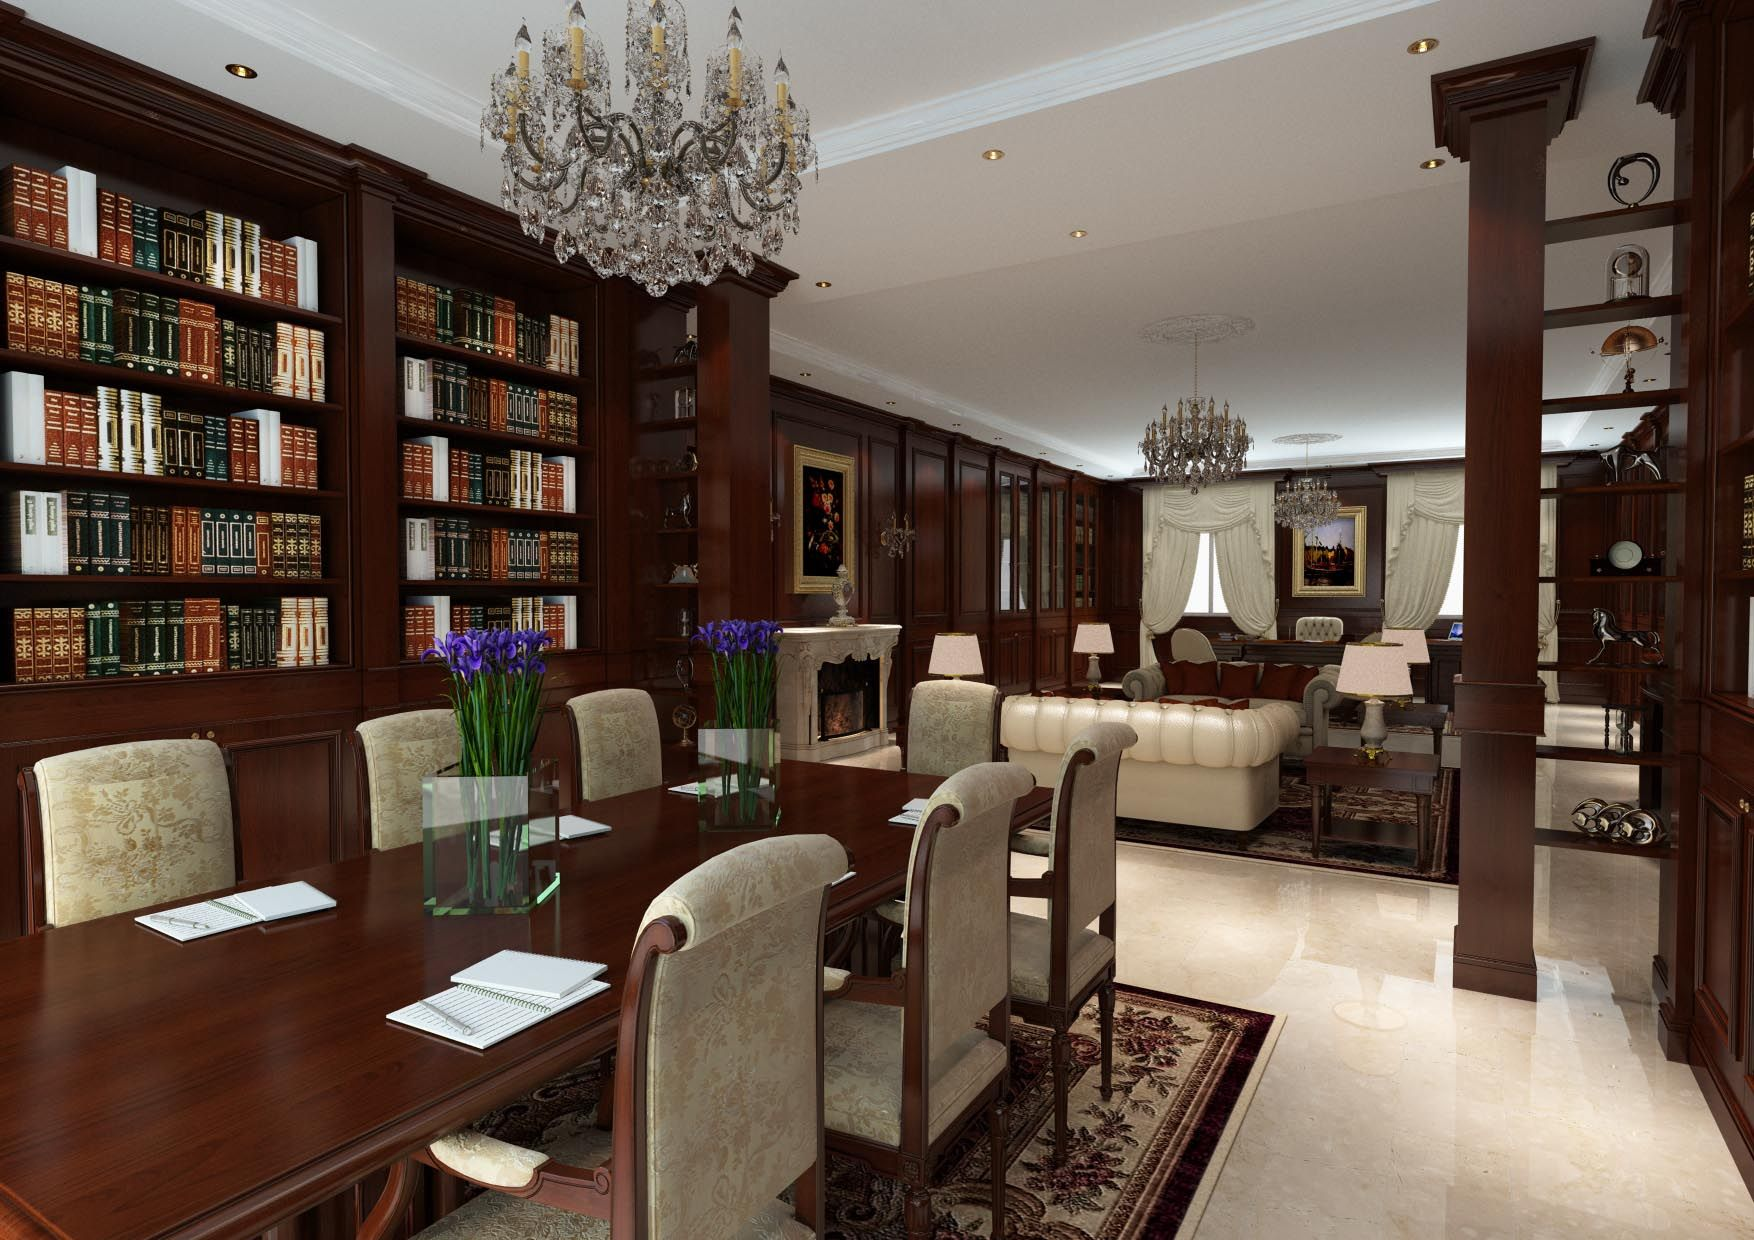 #officedesign#classicofficefurniture# ...